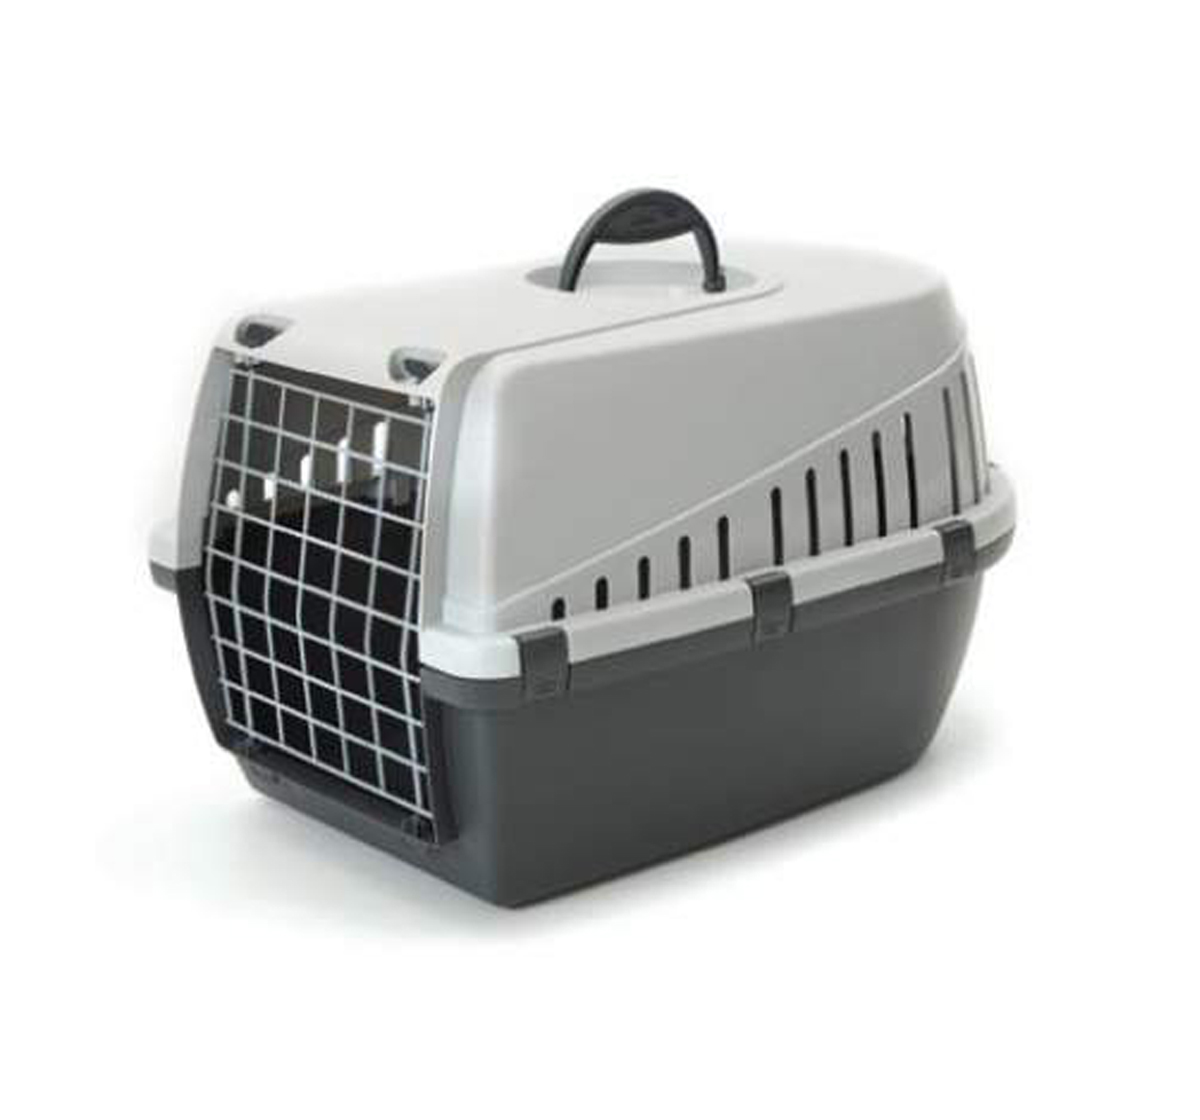 Savic Dog Carrier Trotter2 - Dark Grey/Light Grey - Small - (LxWxH - 55.8x38.1x33 cm)